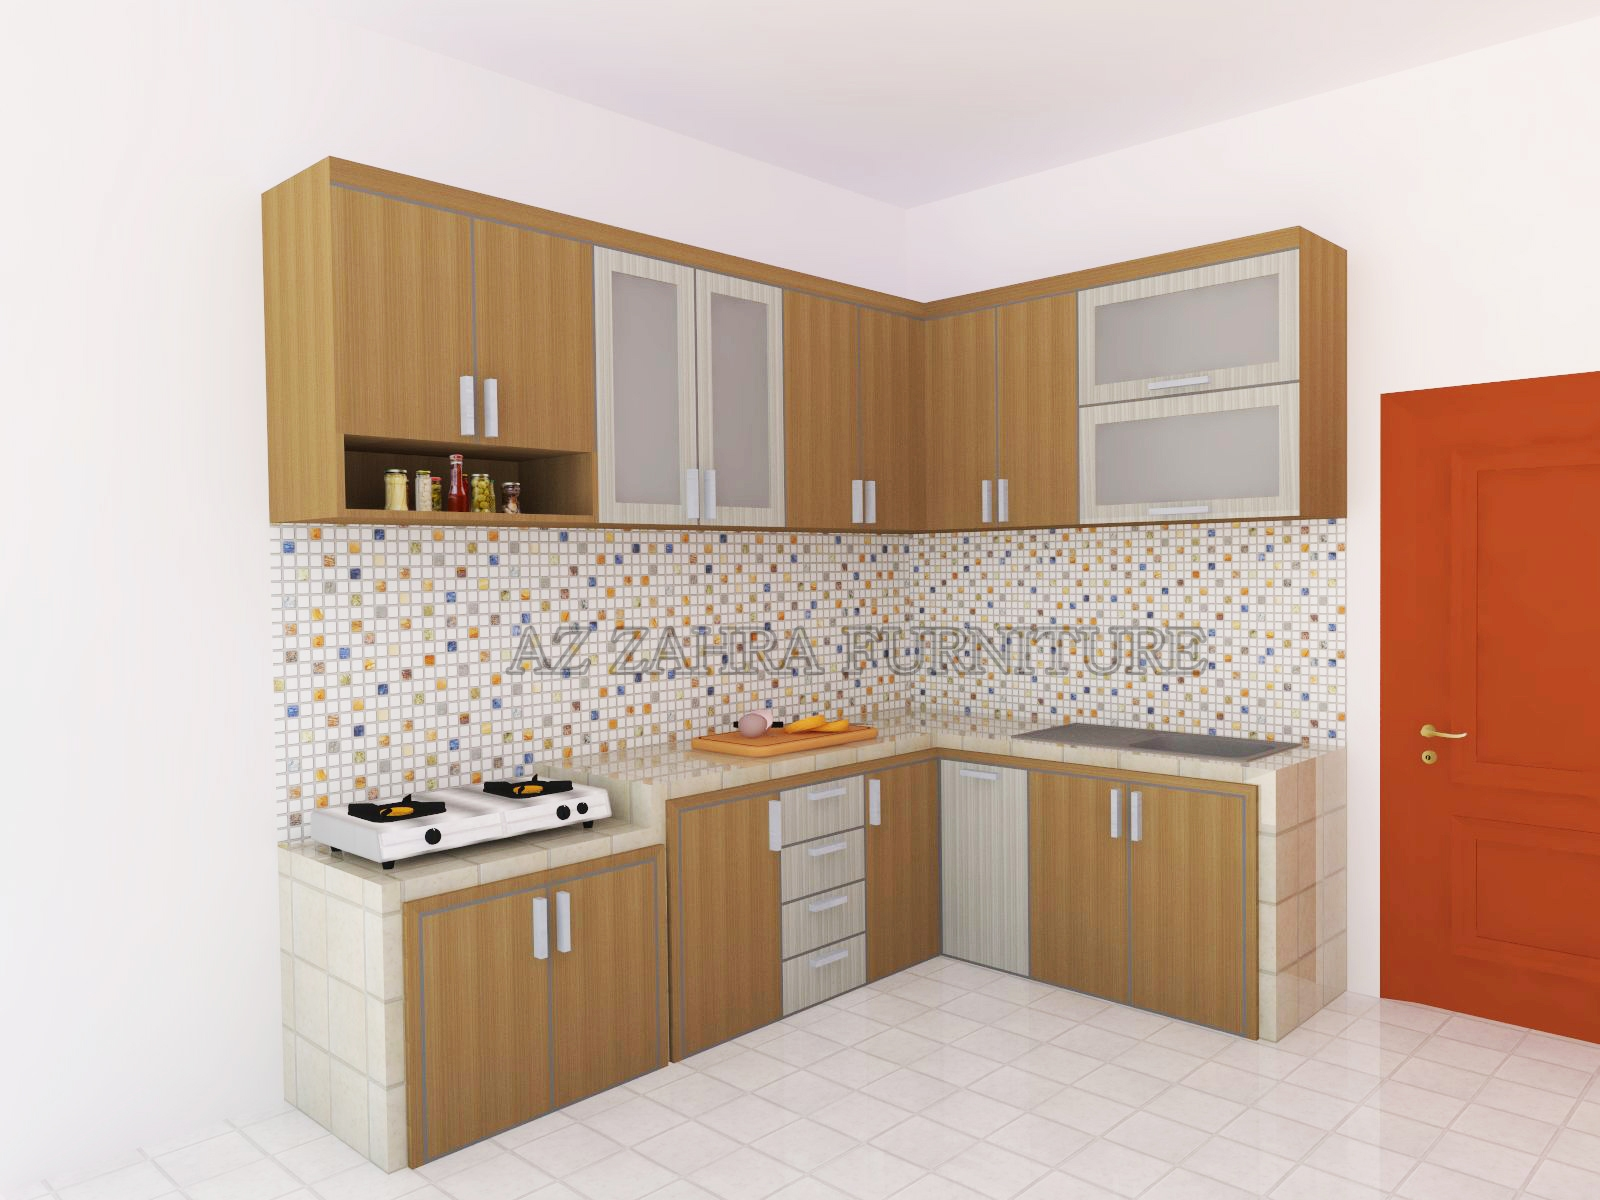 Kitchen set minimalis murah semarang azzahra furniture for Kitchen minimalis